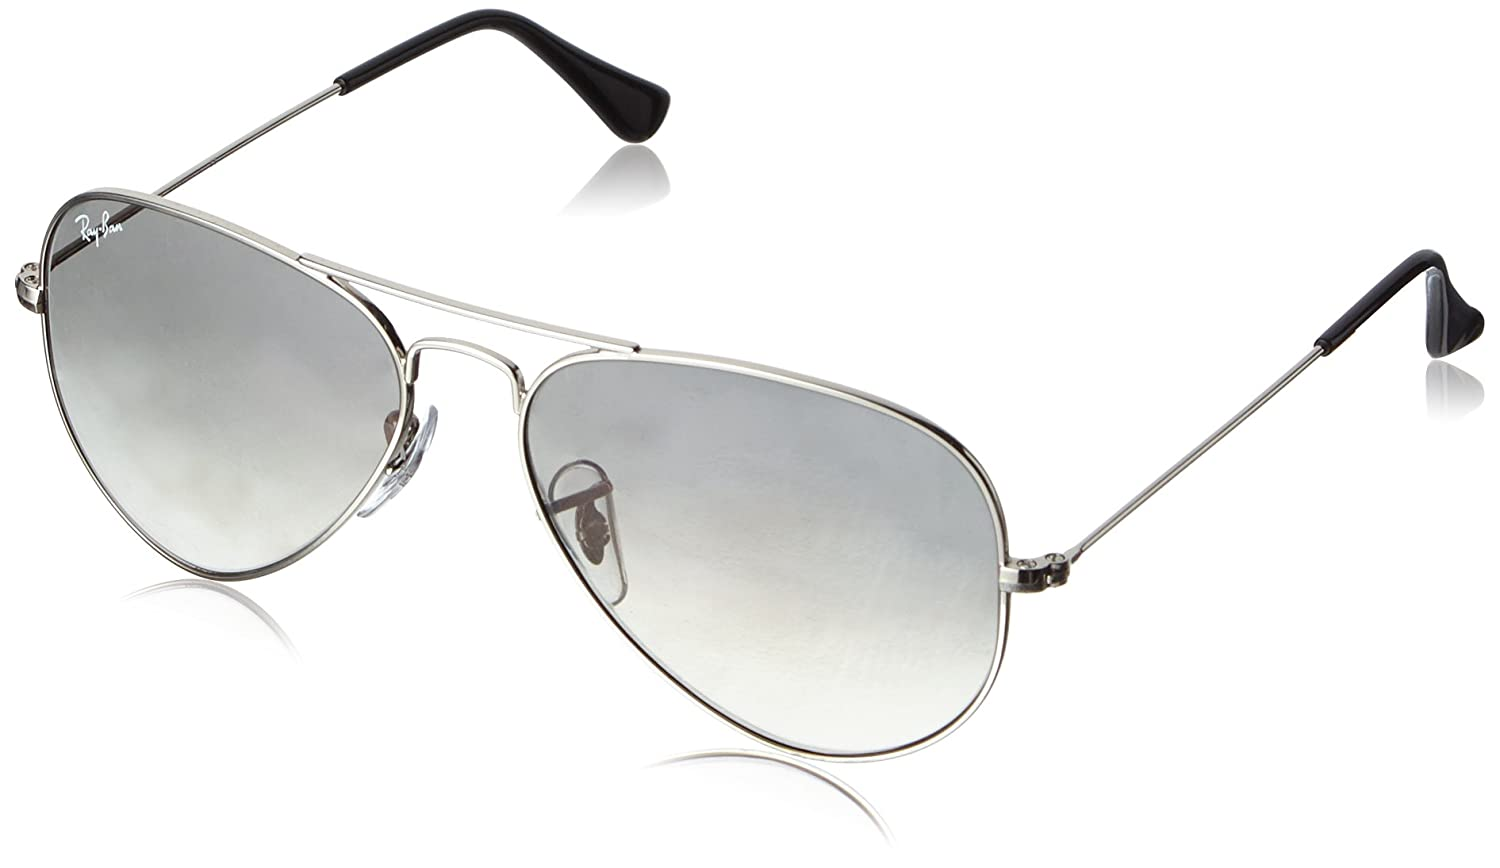 ray ban mens rb3025 large polarized  amazon: ray ban 0rb3025 aviator metal non polarized sunglasses, silver/ crystal grey gradient, 55mm: ray ban: clothing